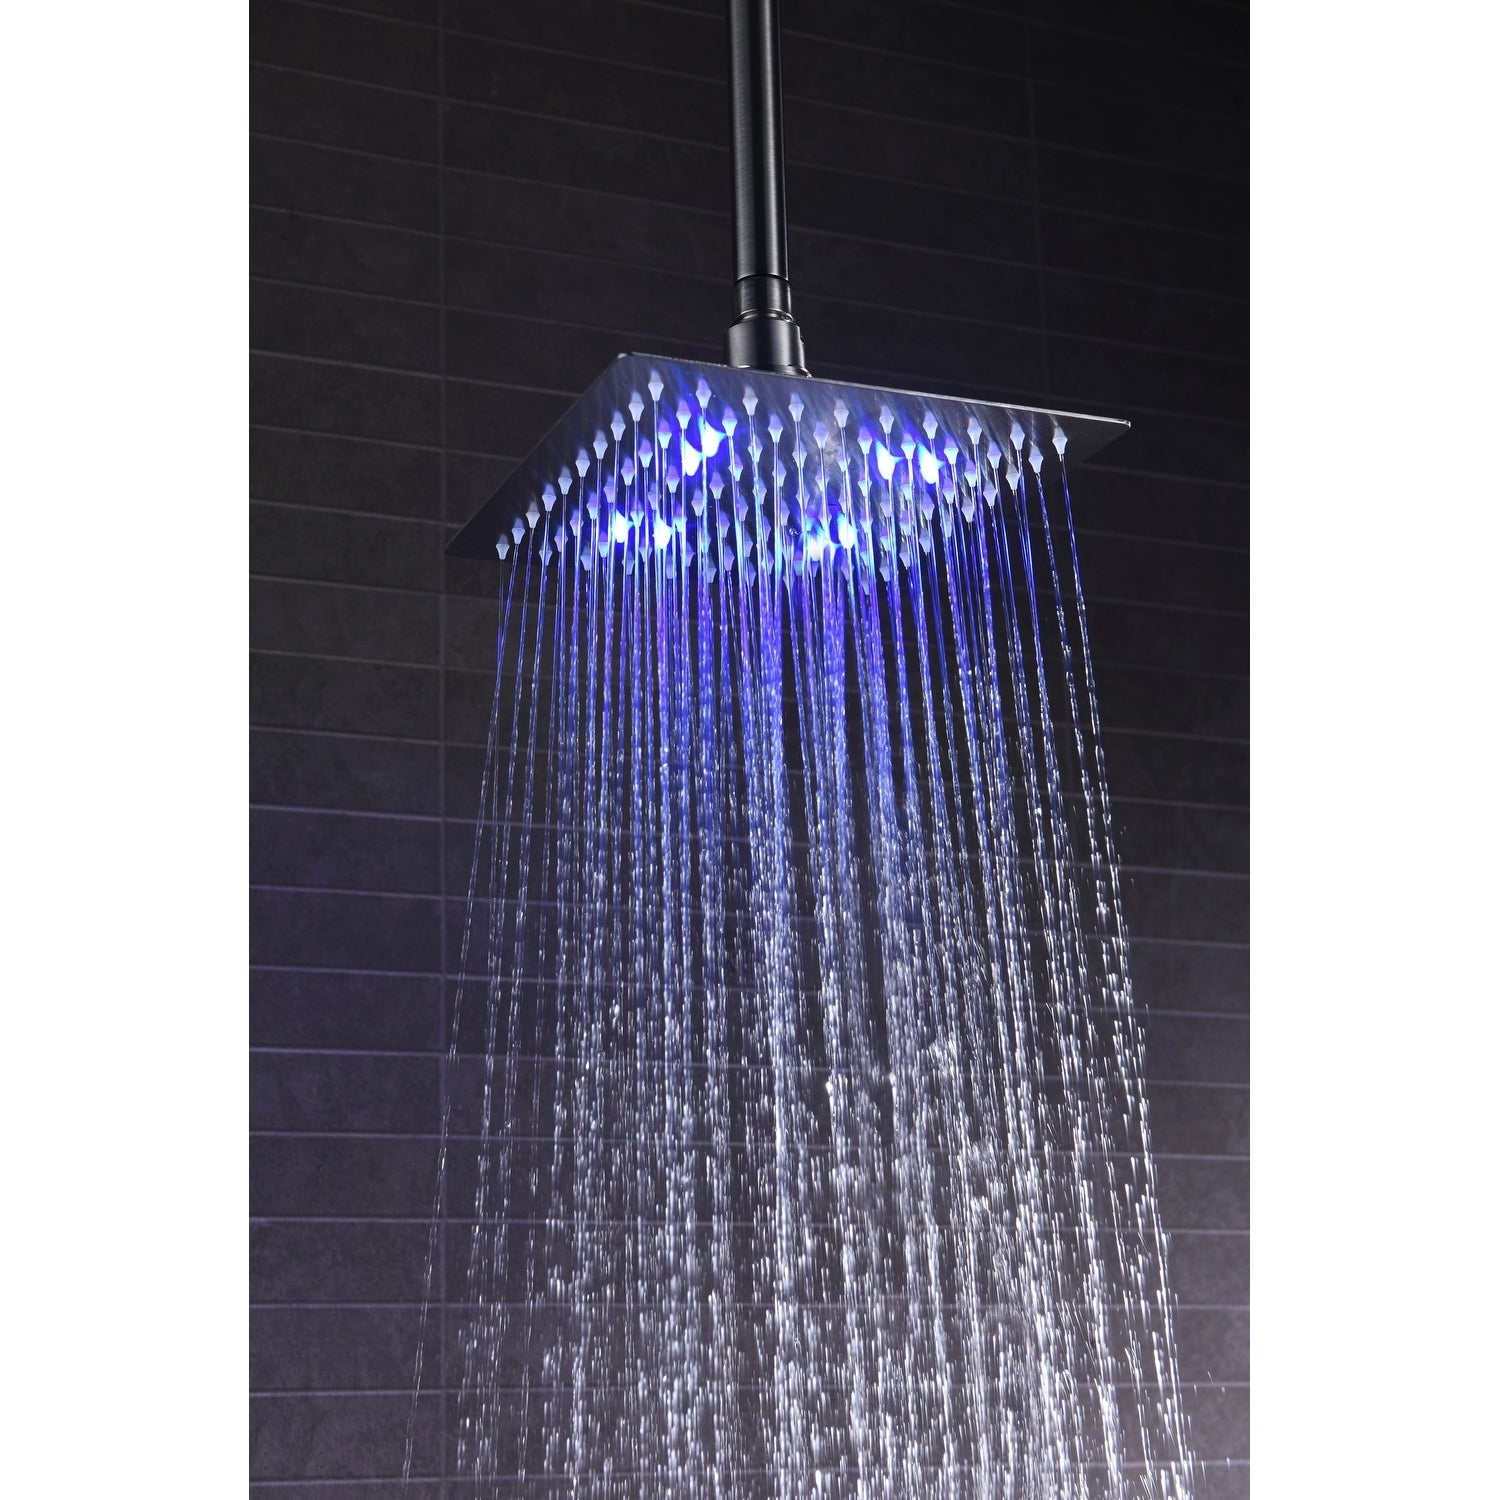 Shop Sumerain Ceiling Shower System With LED Head